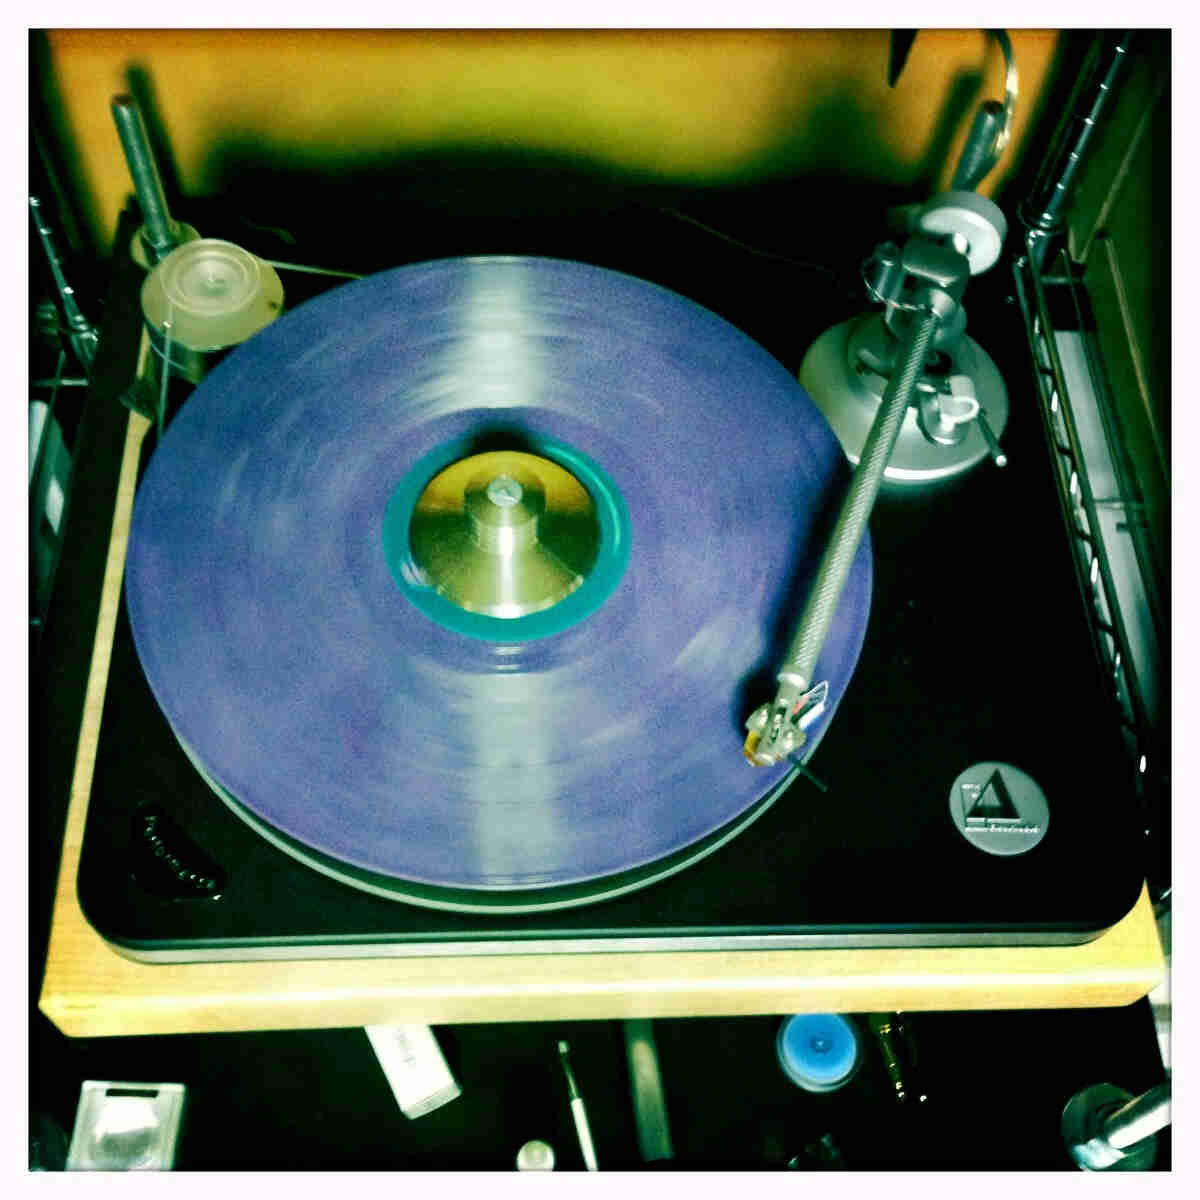 Downward view of a blue record album on a turntable